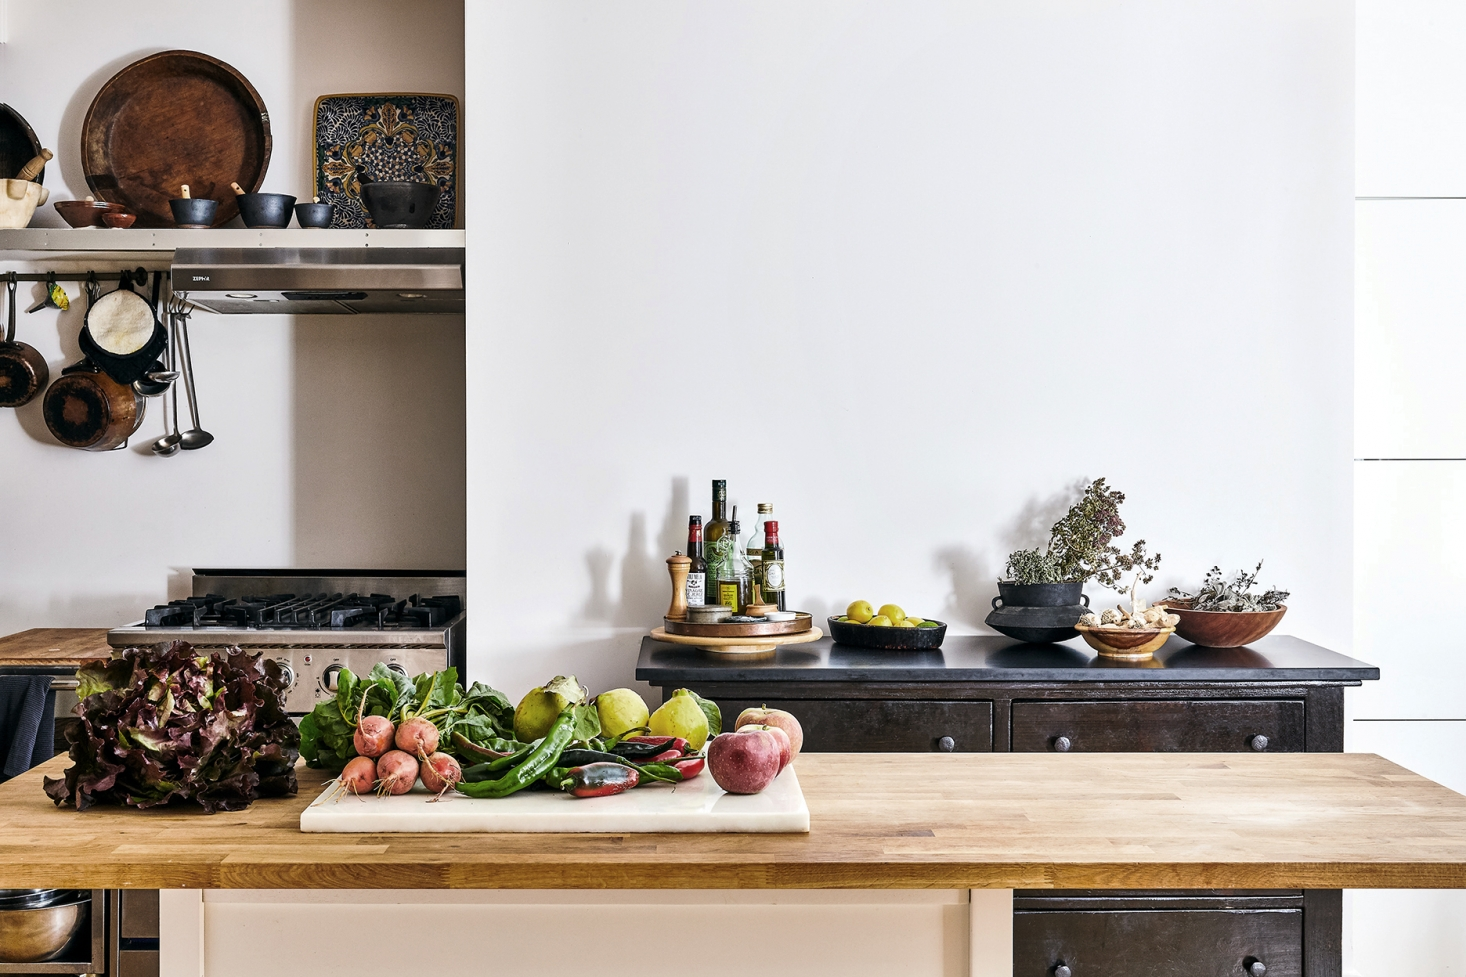 squarerooms-wooden-butcher-block-countertop-pros-and-cons-hygiene